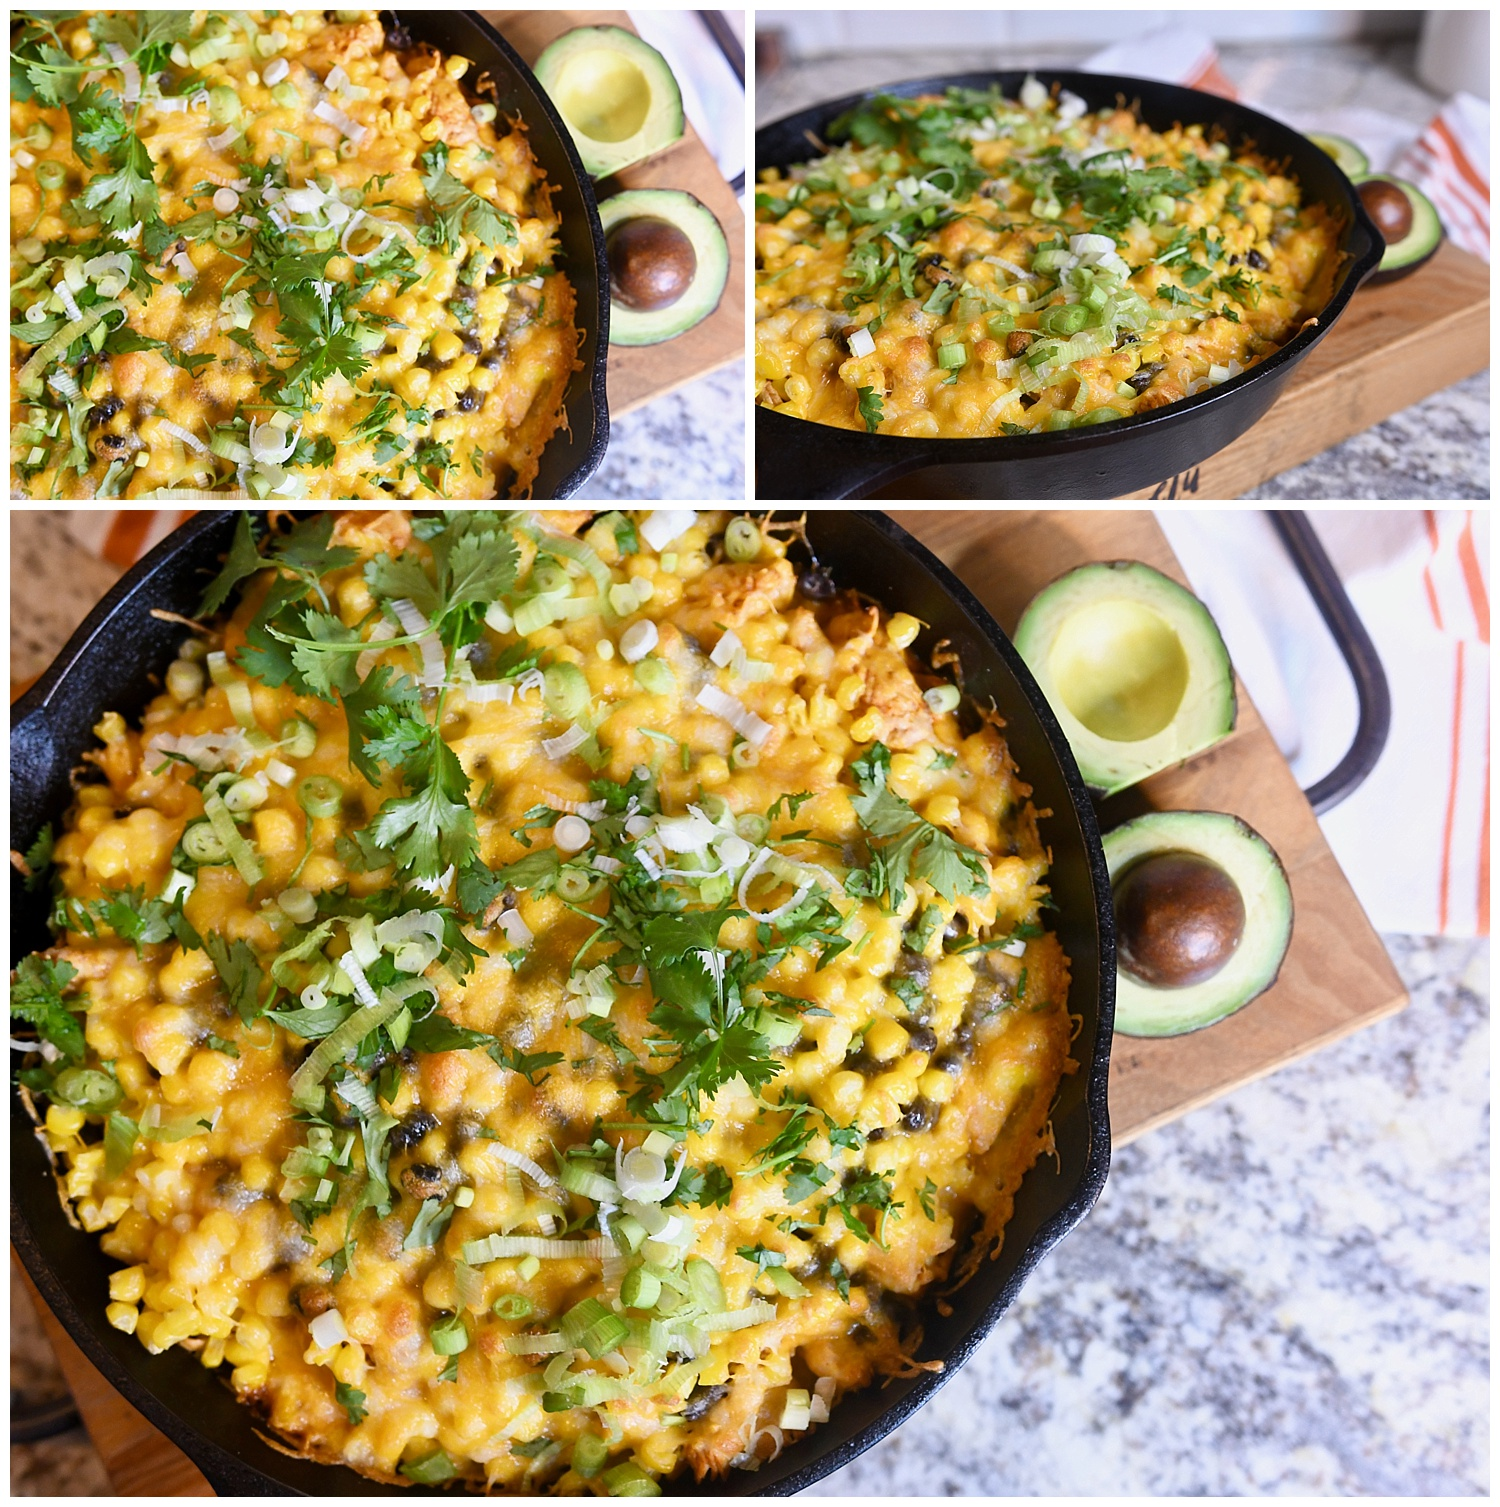 Chipotle Chicken Enchilada Bake